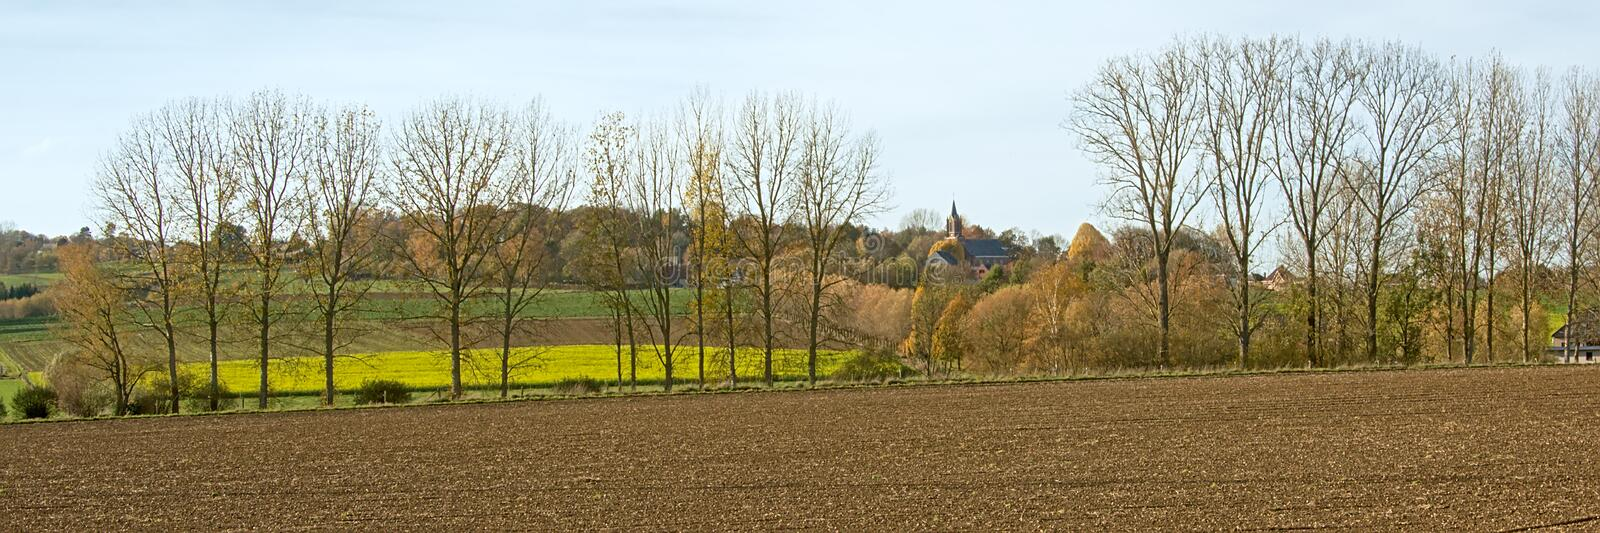 Panoramic autum pastoral landscape with church tower in the Flemish Ardennes, Belgium stock photo